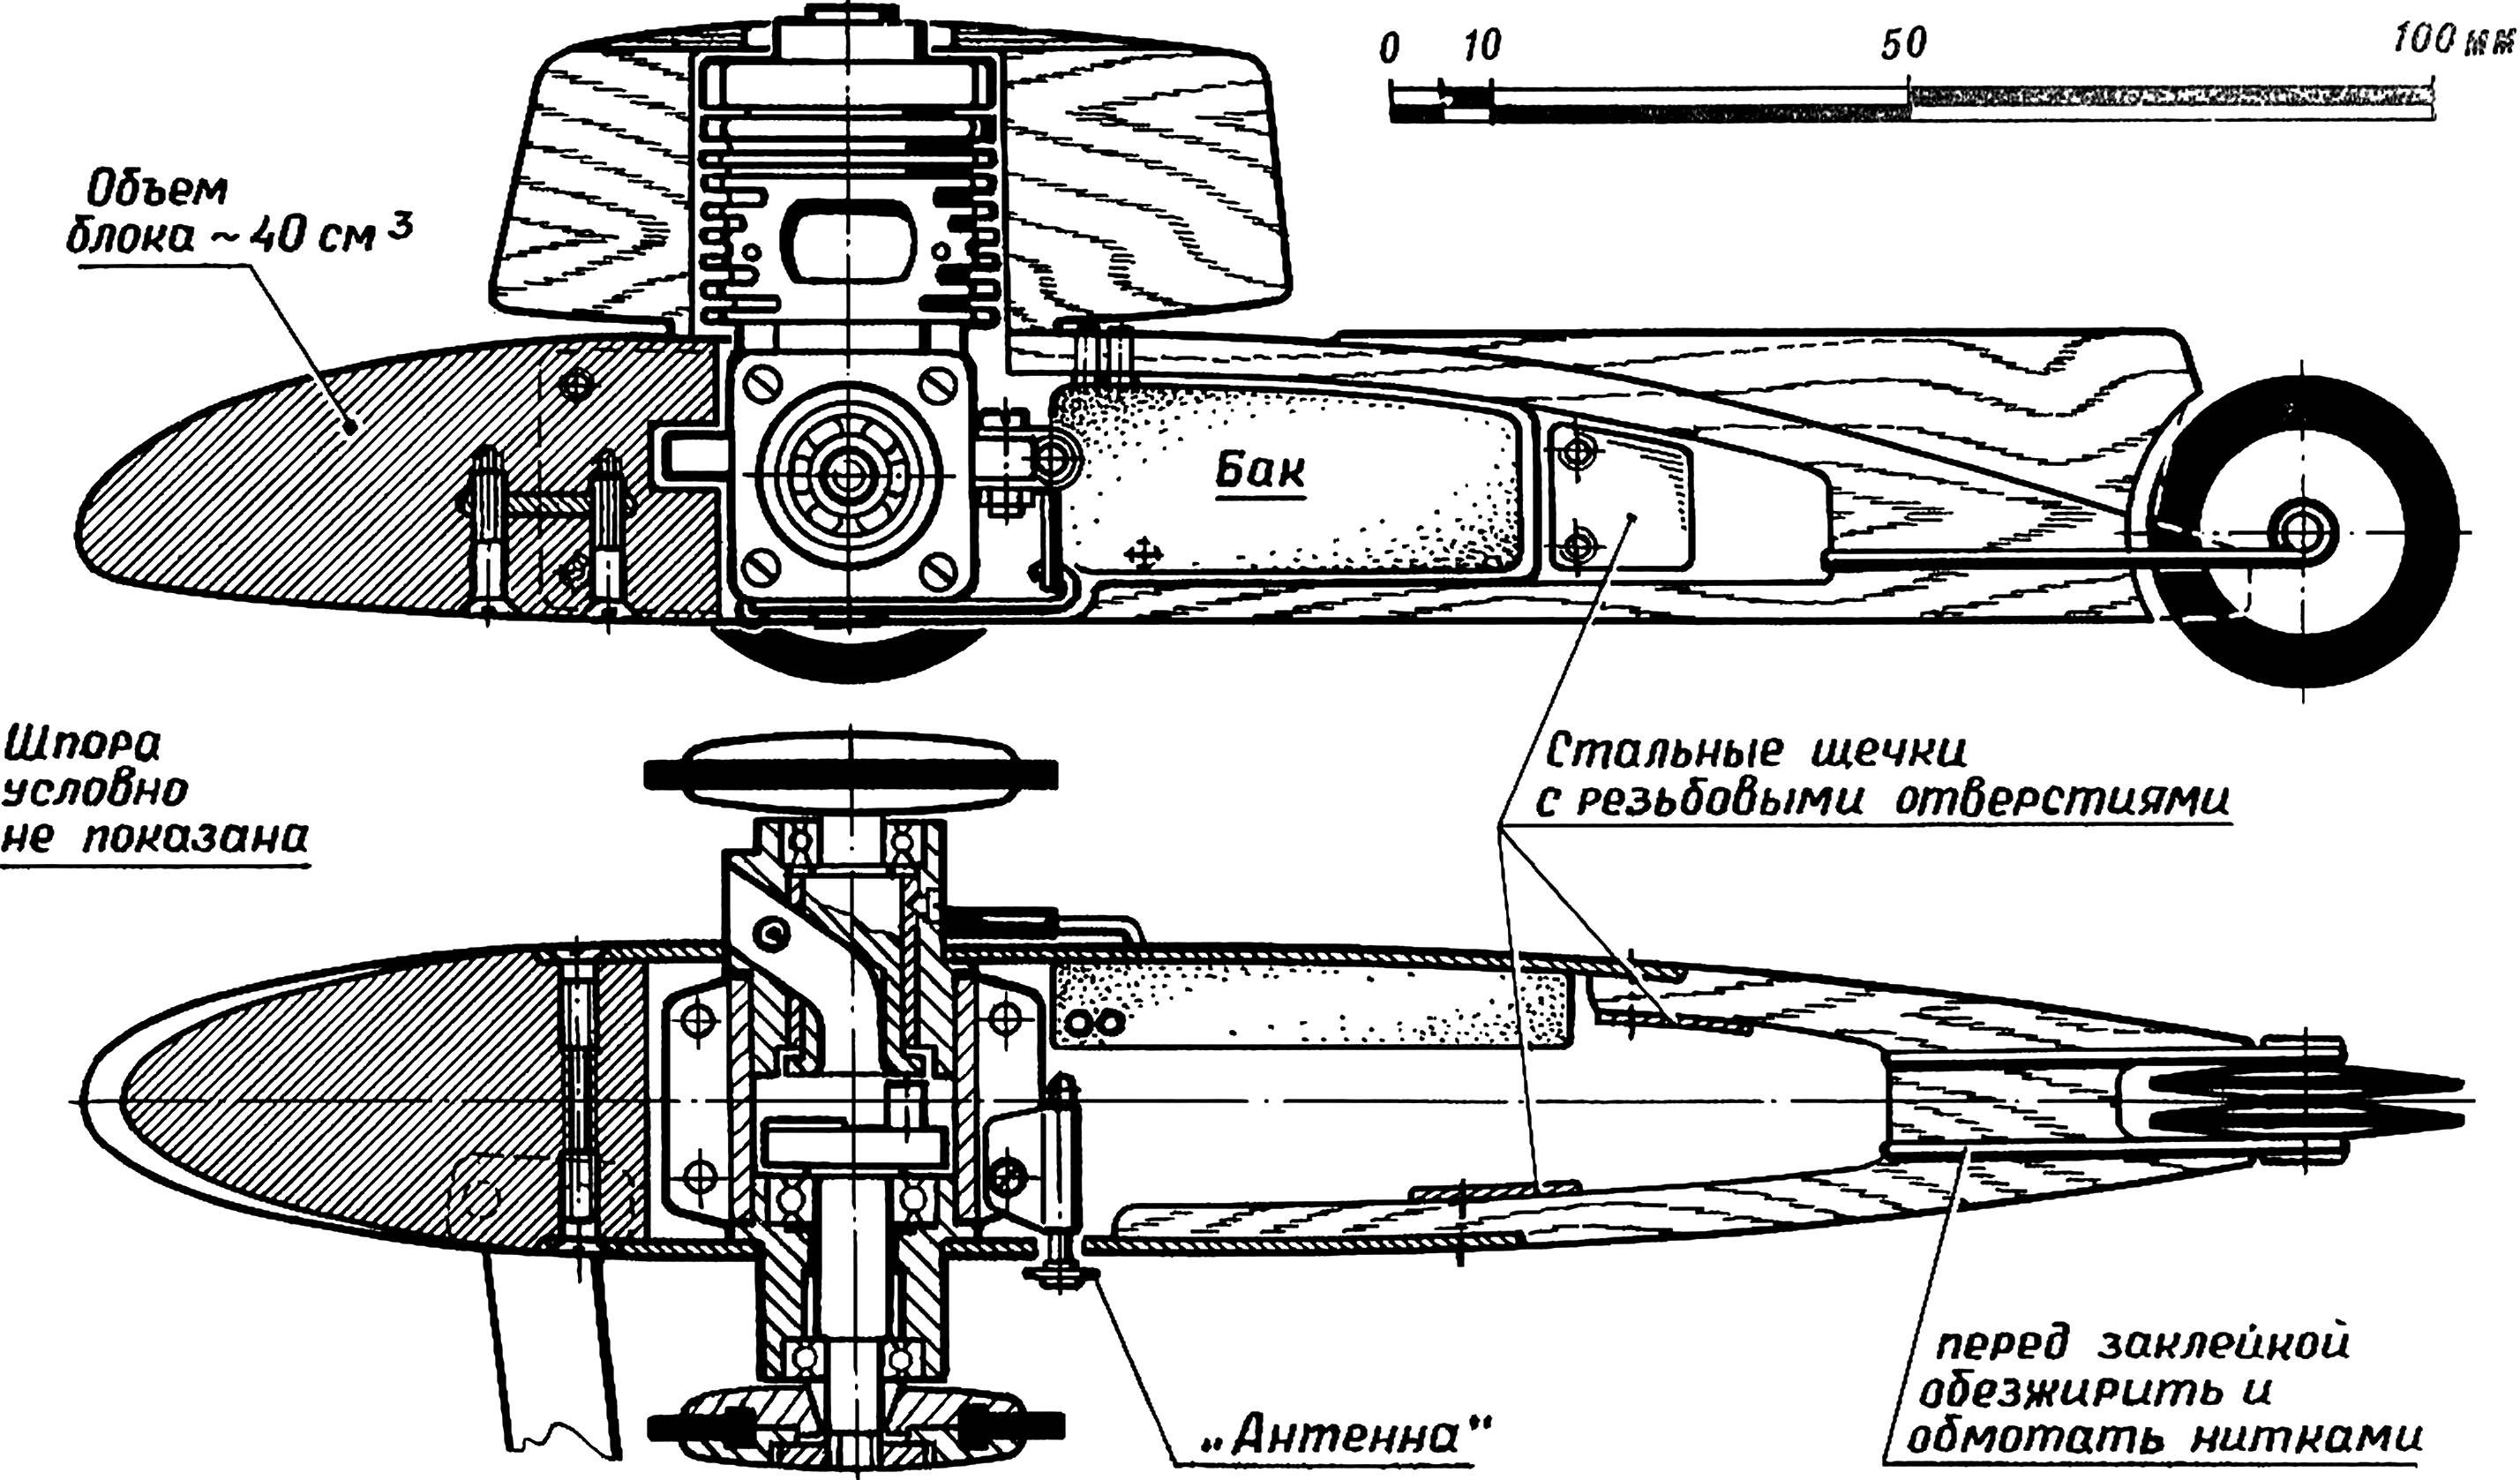 Fig. 2. The design of the car racing.